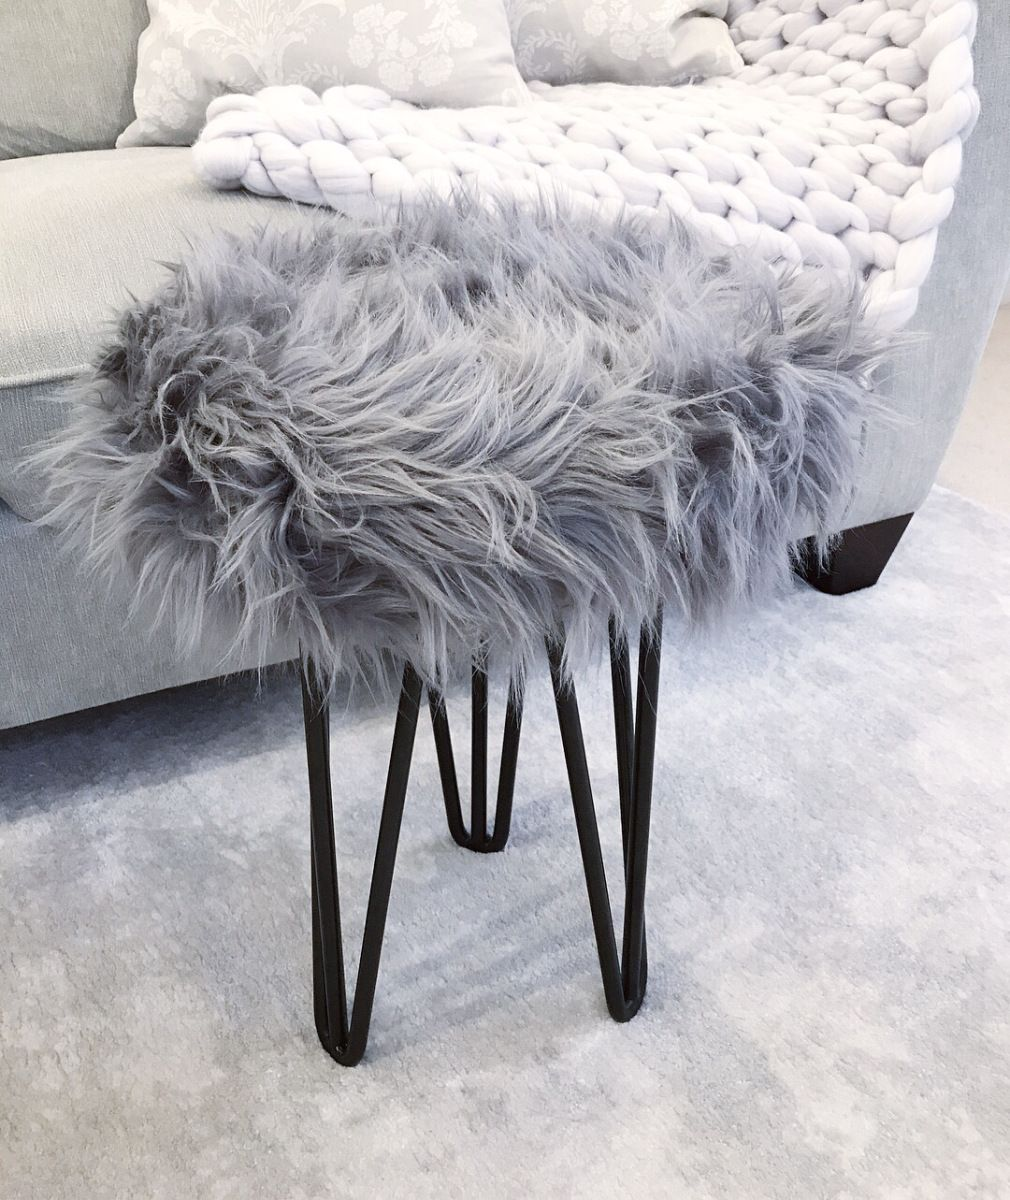 THE FLUFFY STOOL Little Home Comforts Fluffy stool